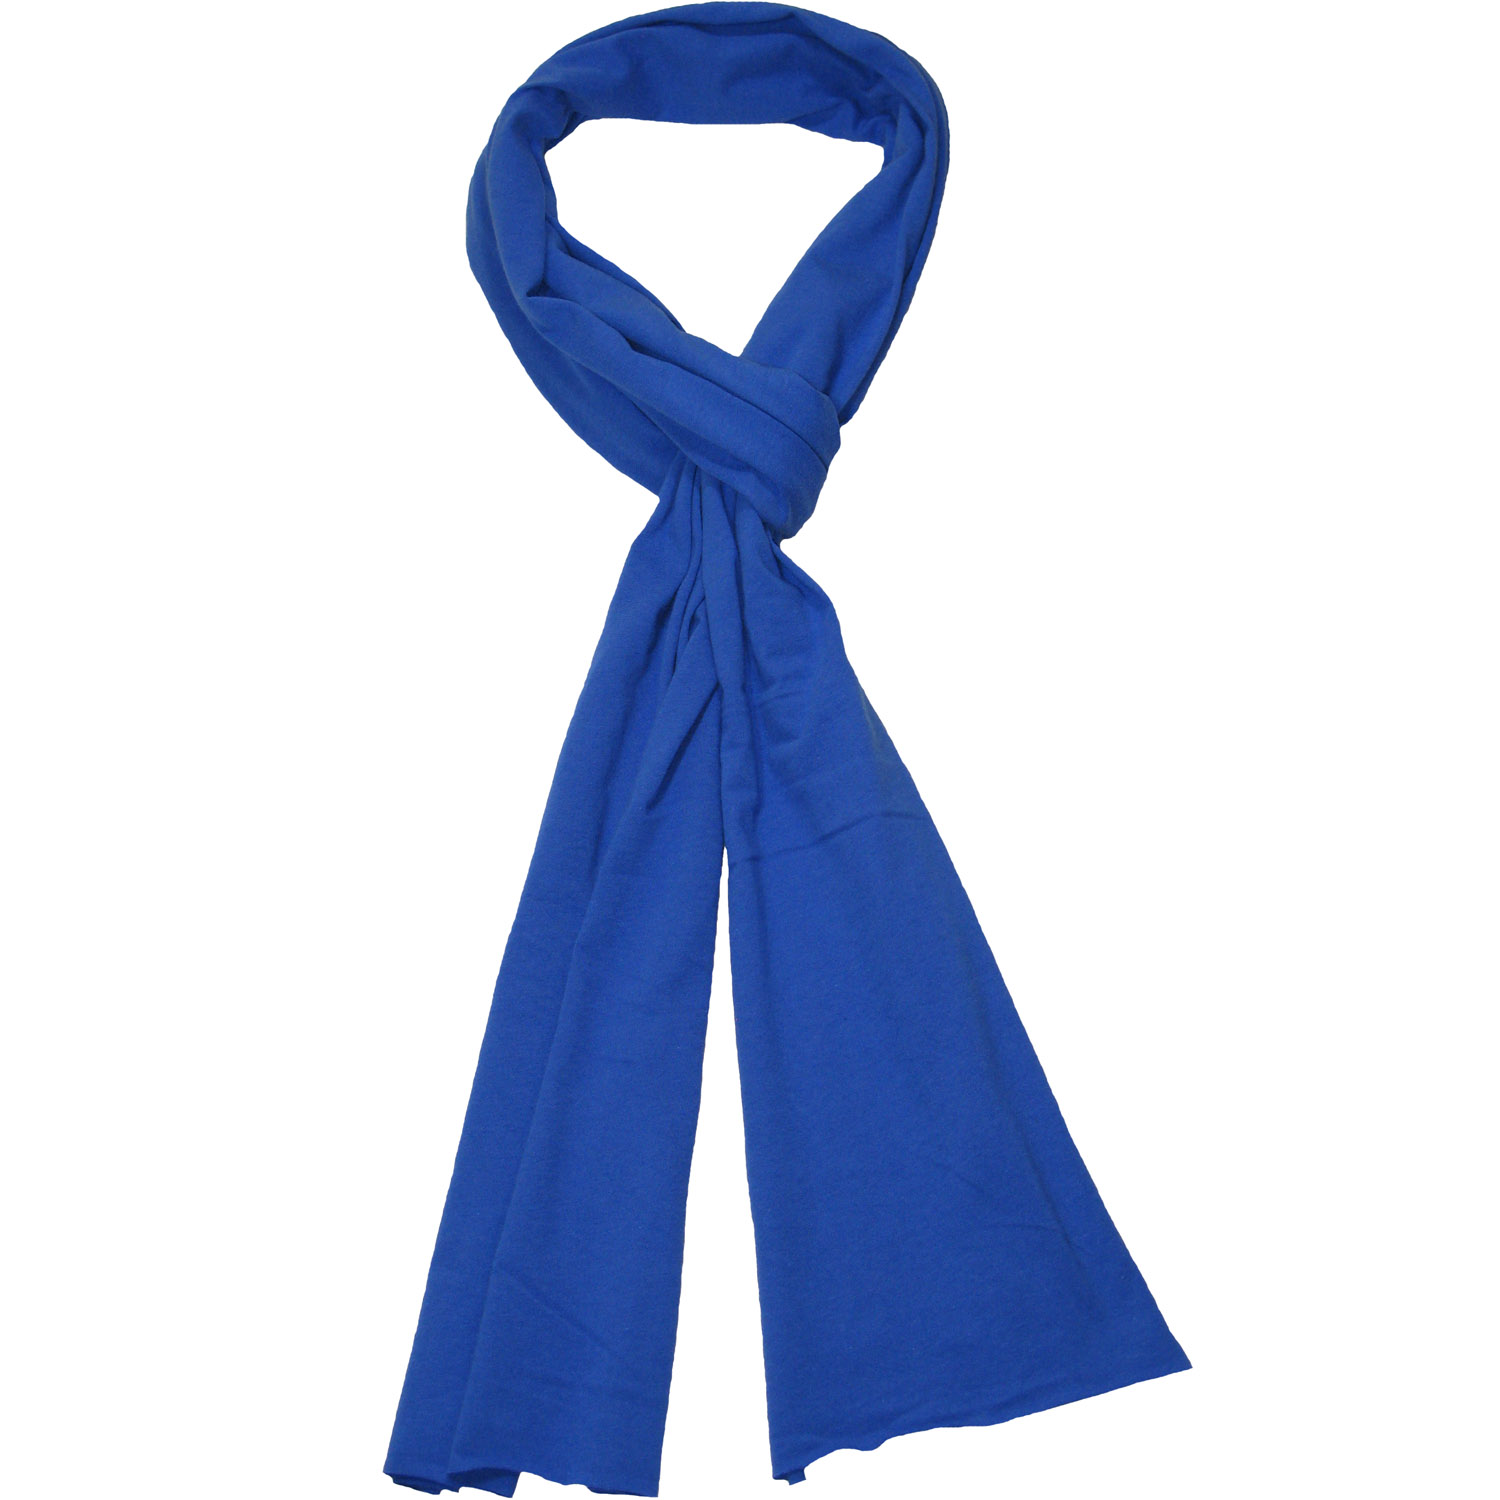 La Fiorentina Women's Long Scarf with Contrasting Fringe, Dark Blue/Light Blue, One Size. Long oversized scarf with a extra long fringes to add a pop of color to any outfit. This scarf can be worn looped around multiple times for that relaxed look. more.